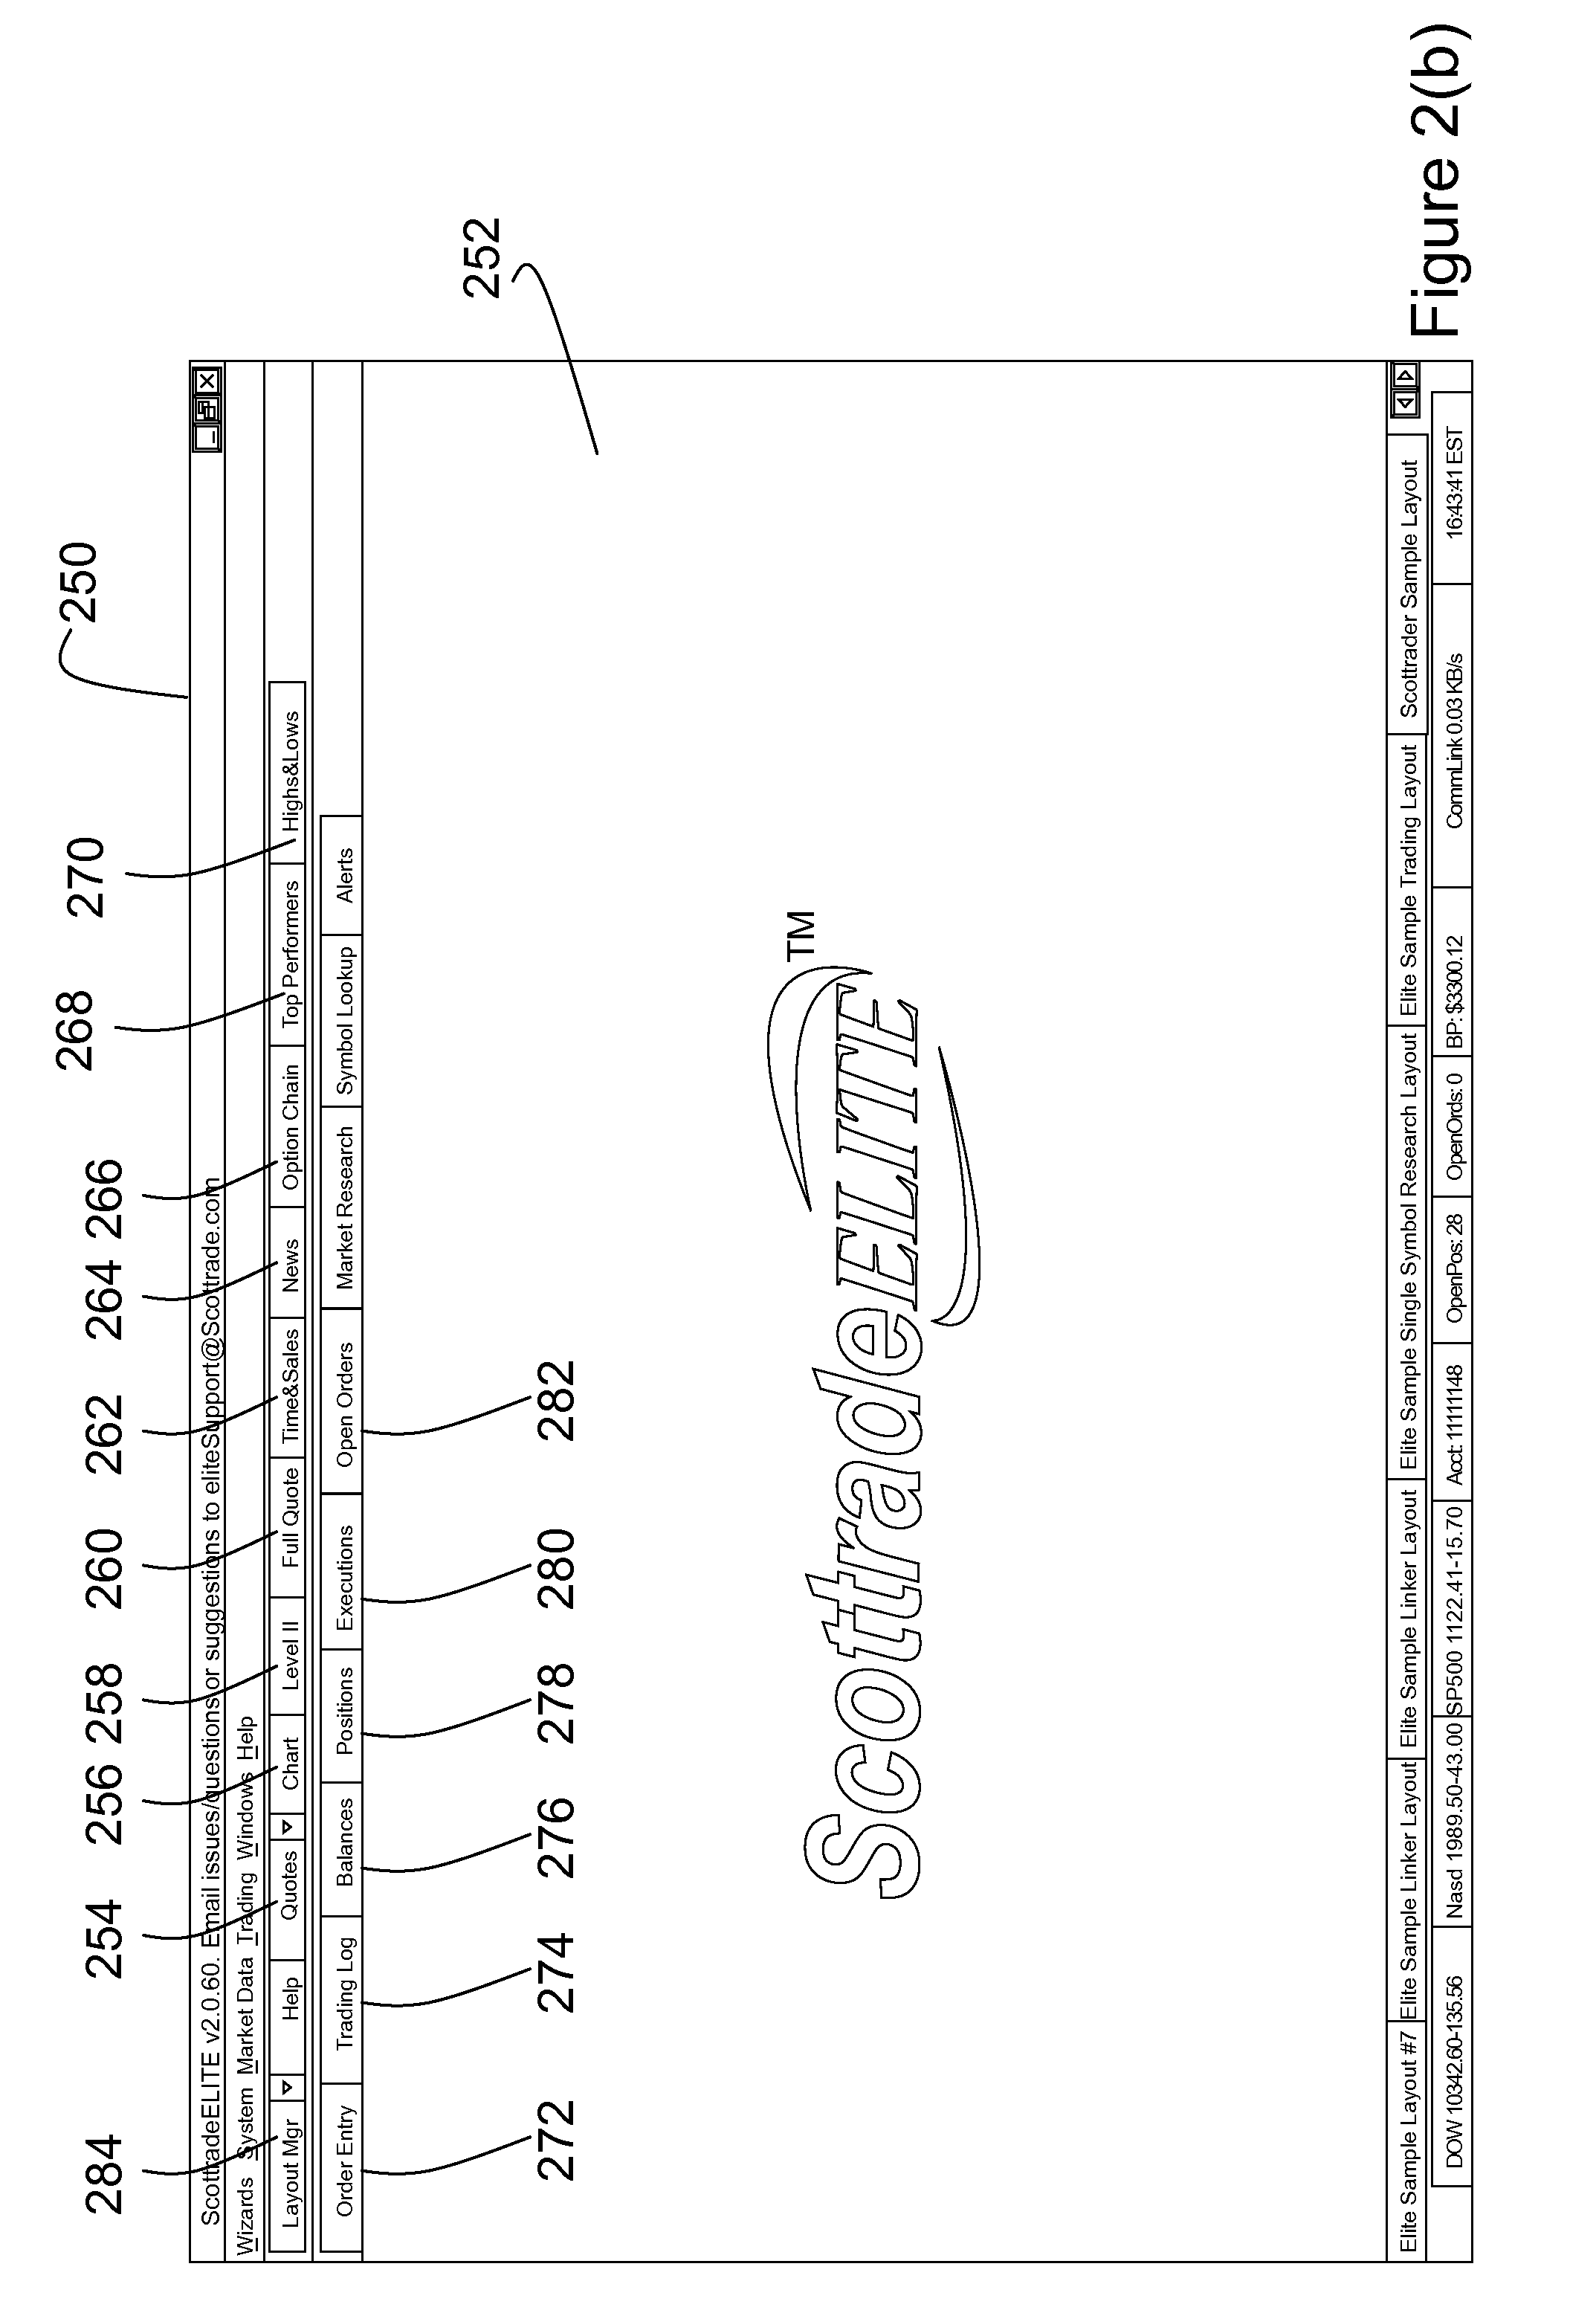 Scottrade Quotes And Research Patent Us20100218136  Method And Apparatus For Userinteractive